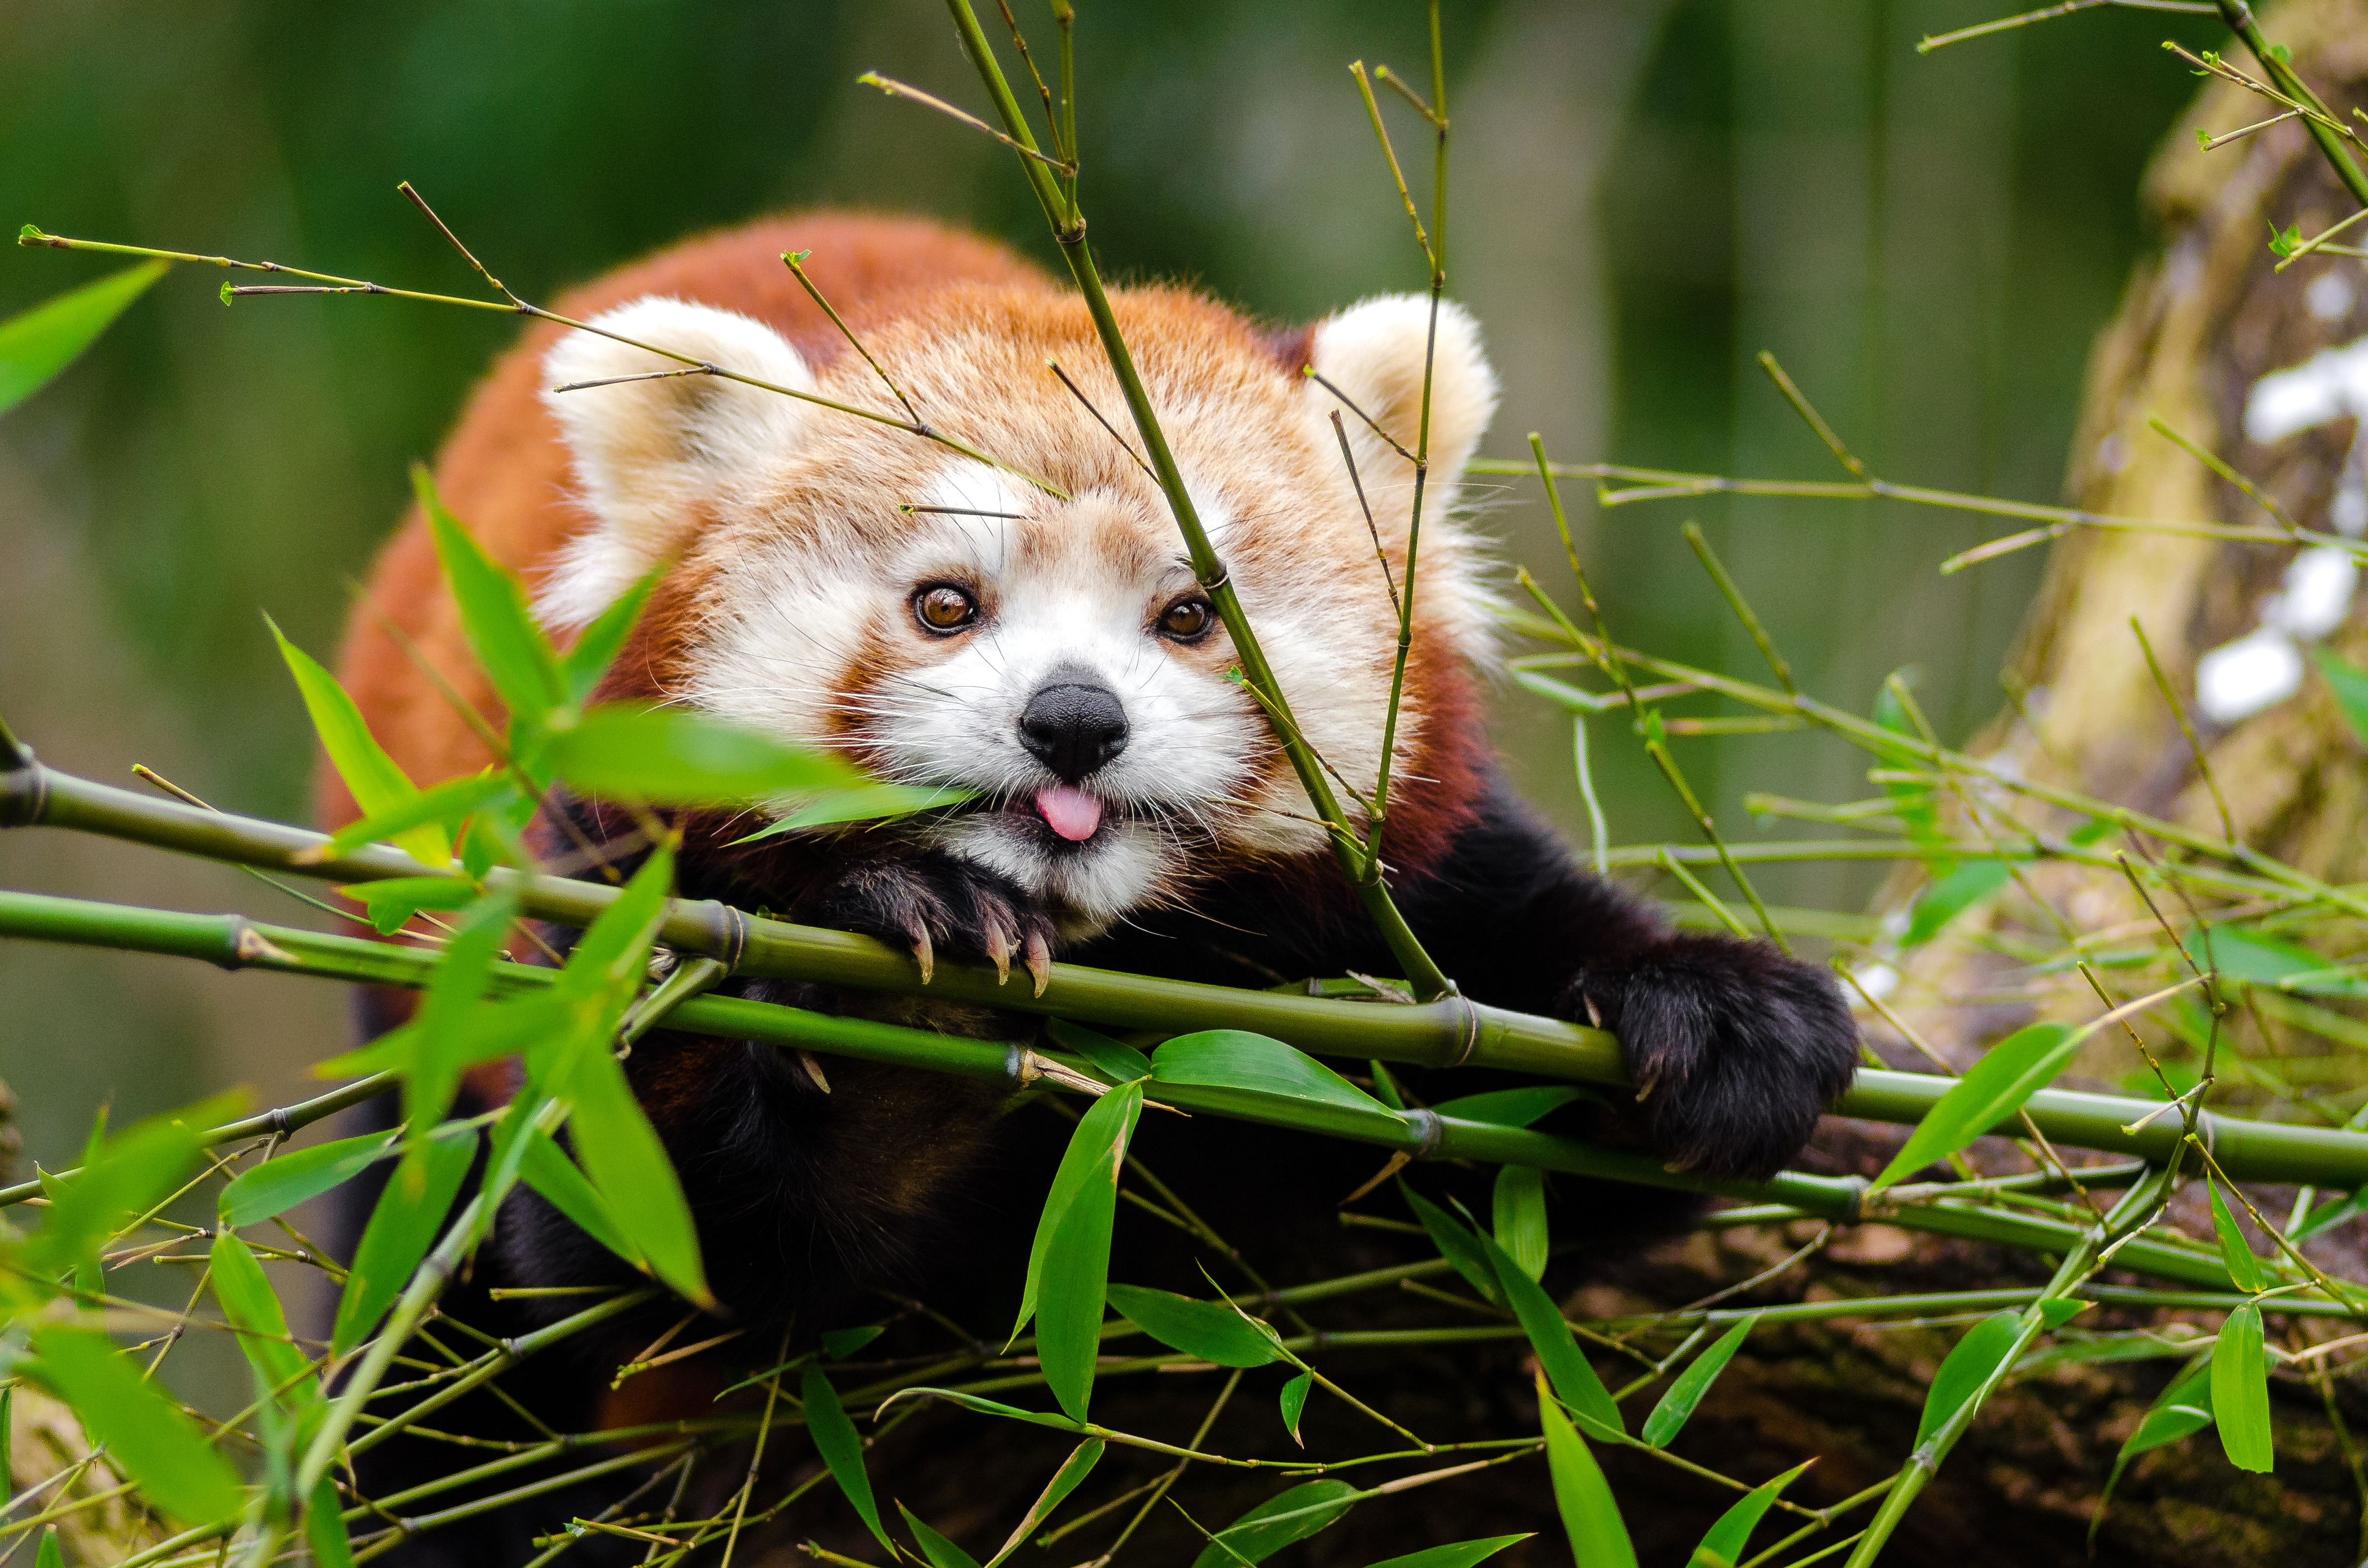 88292 download wallpaper Animals, Little Panda, Small Panda, Panda, Protruding Tongue, Tongue Stuck Out, Nice, Sweetheart, Funny, Bamboo, Branches screensavers and pictures for free